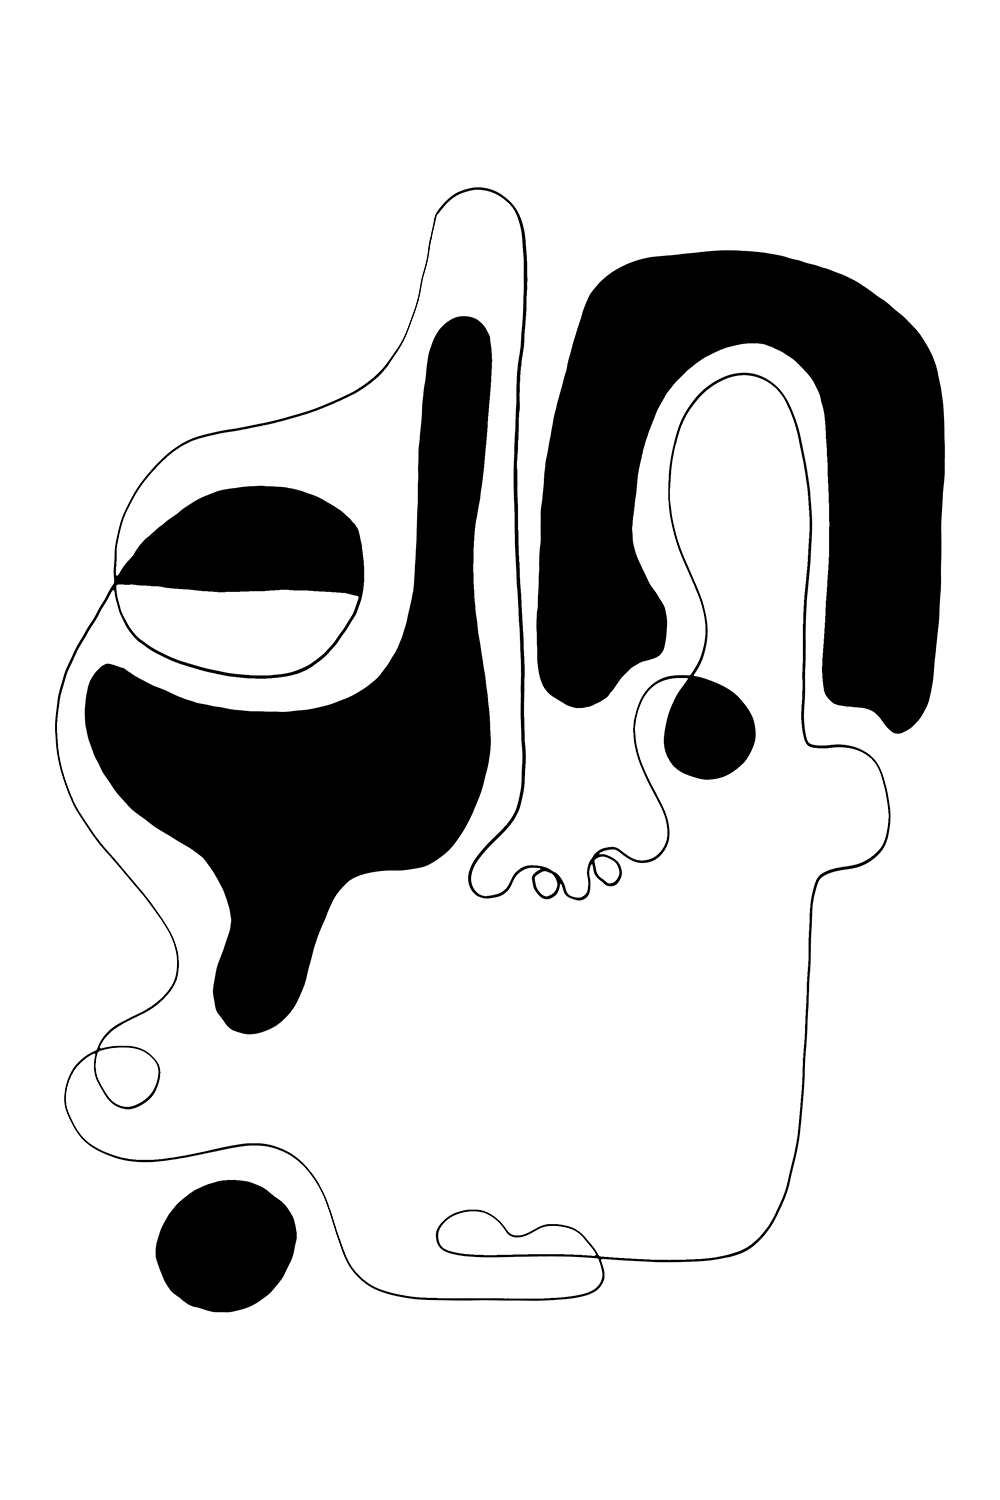 Minimalist line illustration of an abstract portrait